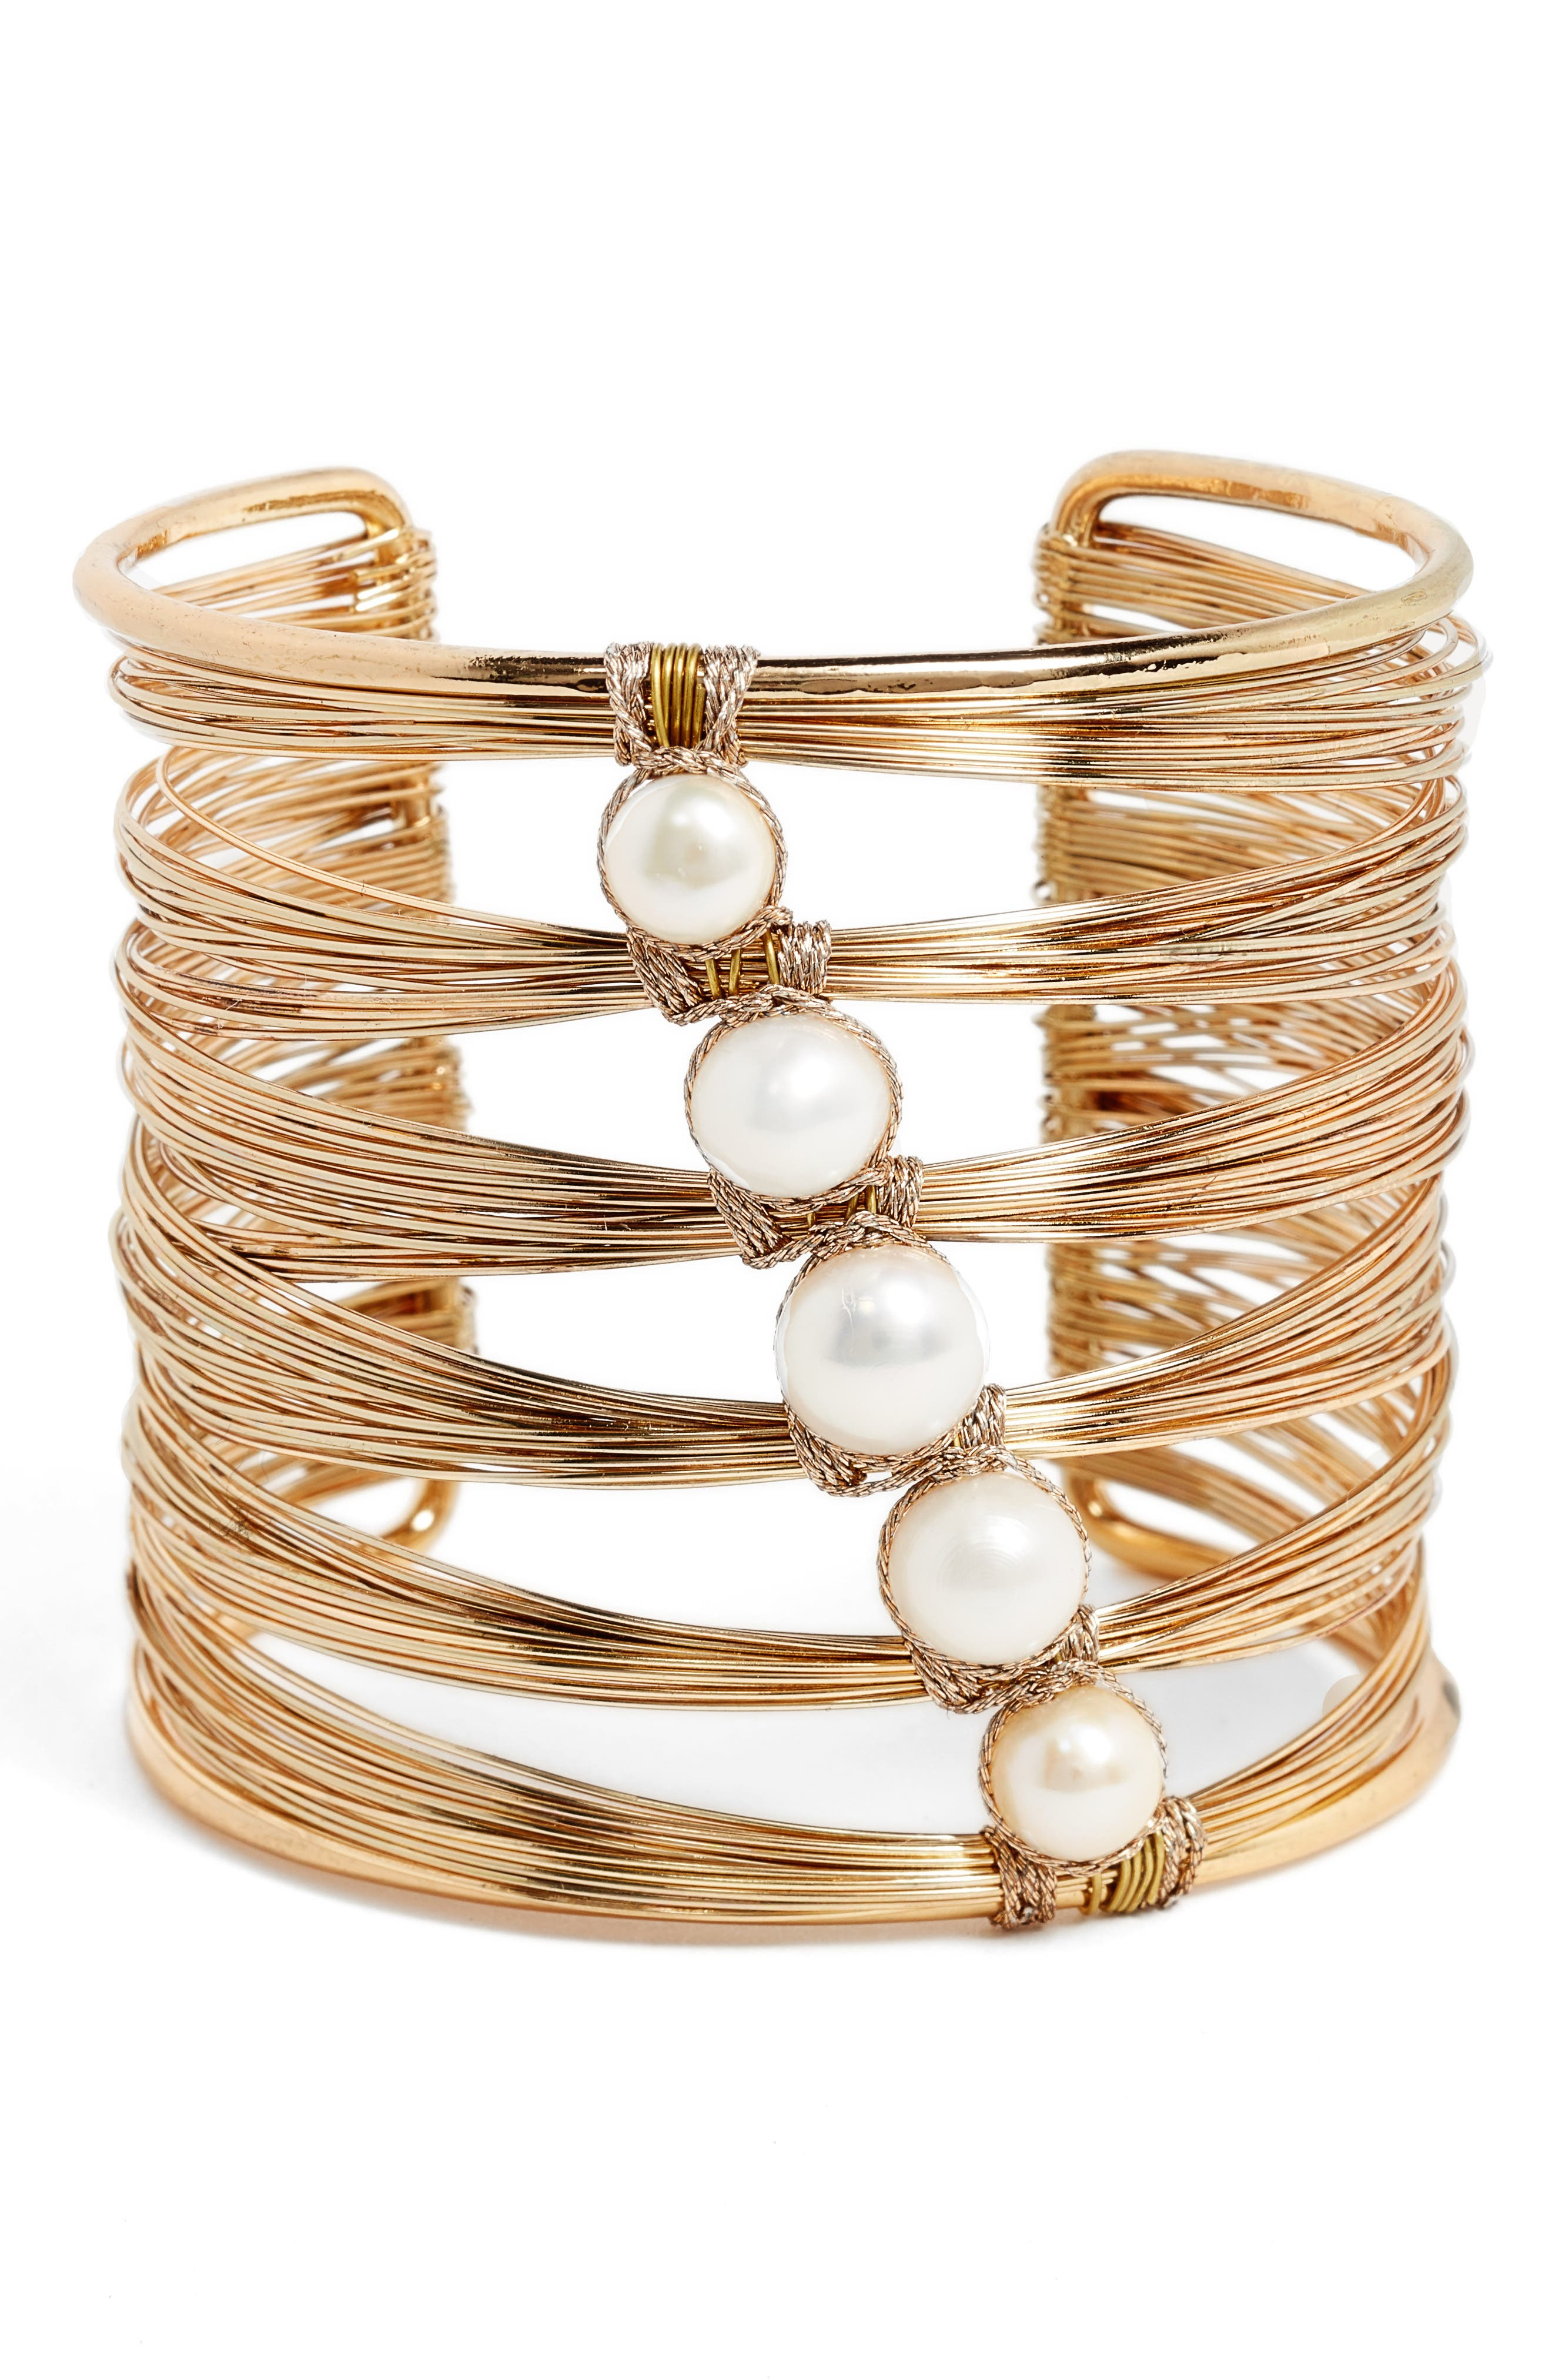 Freshwater Pearl Wire Cuff,                             Main thumbnail 1, color,                             710